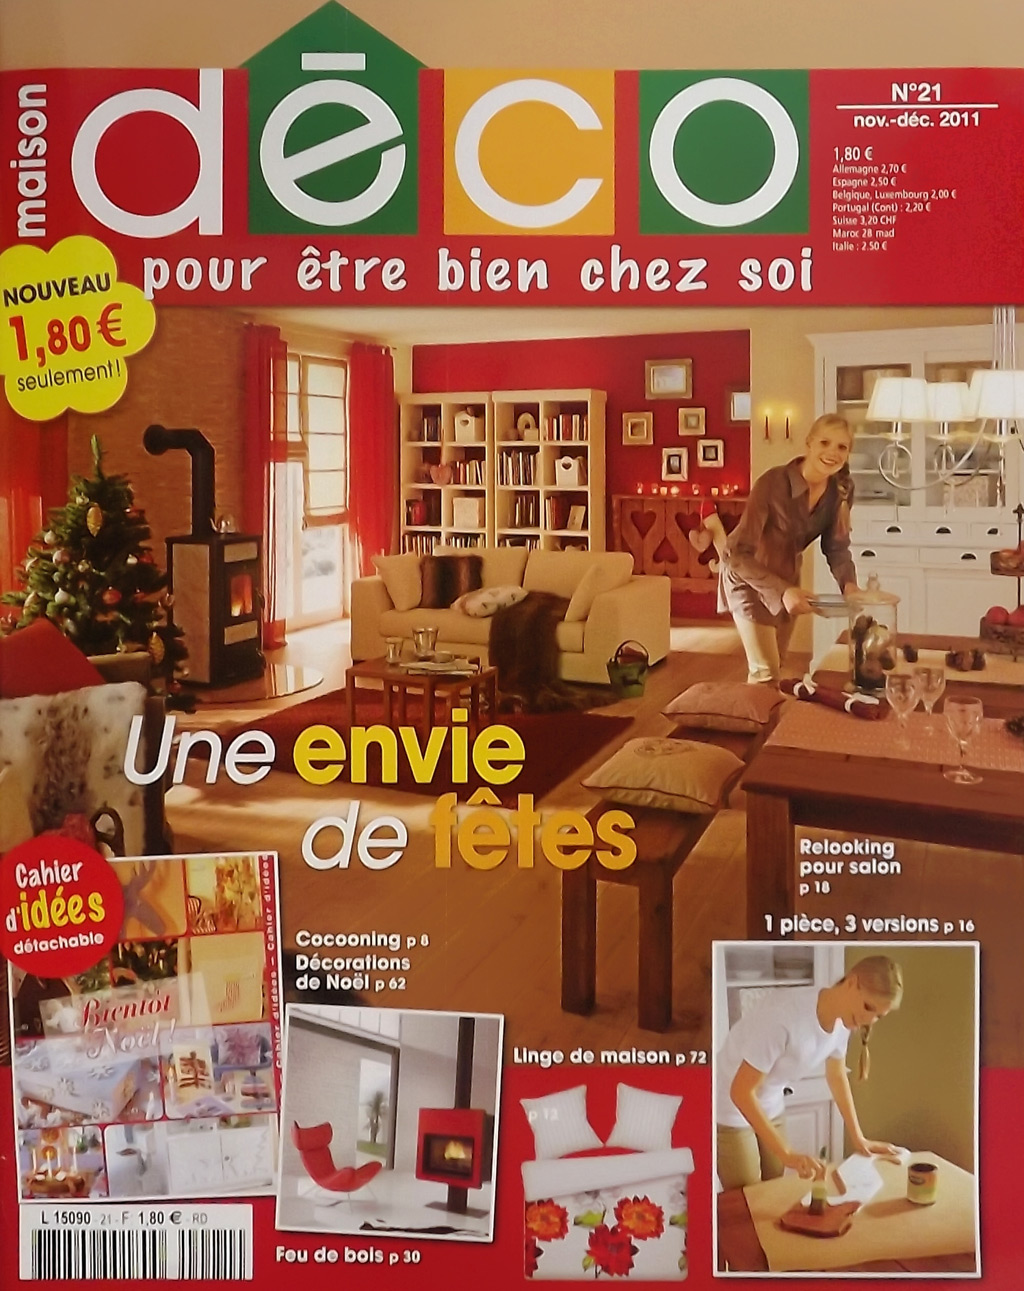 Maison deco magazine designe meuble gt gt pictures to pin on pinterest - Maison decoration magazine ...